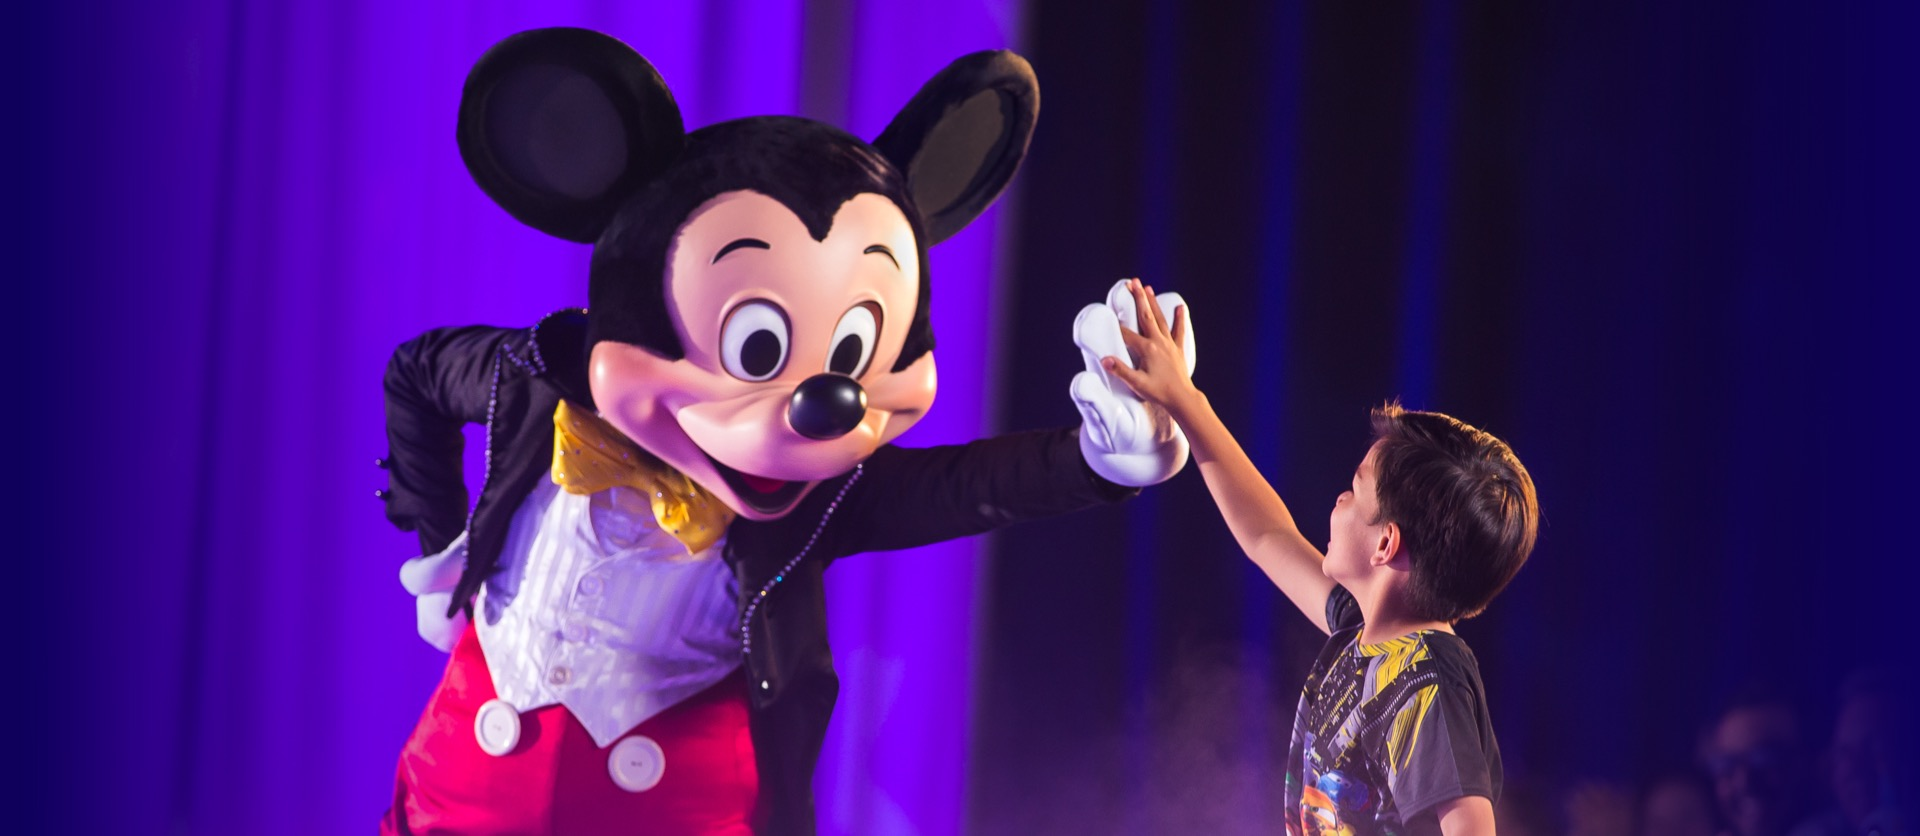 Mickey Mouses gives young boy a high five